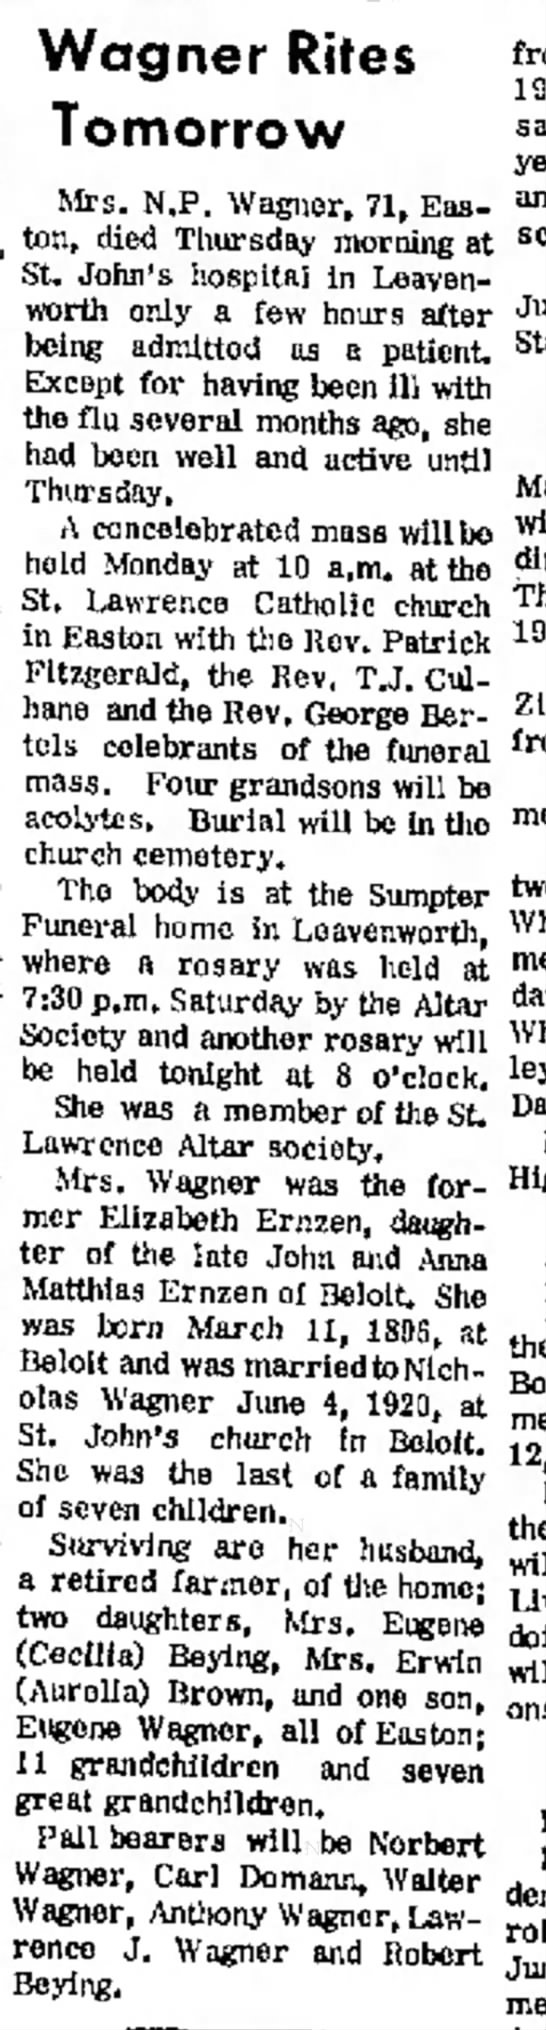 Cecilia Beying mother's obit 1968 Atchison - Wagner Rites Tomorrow Mrs. N,P. Wagner, 71,...